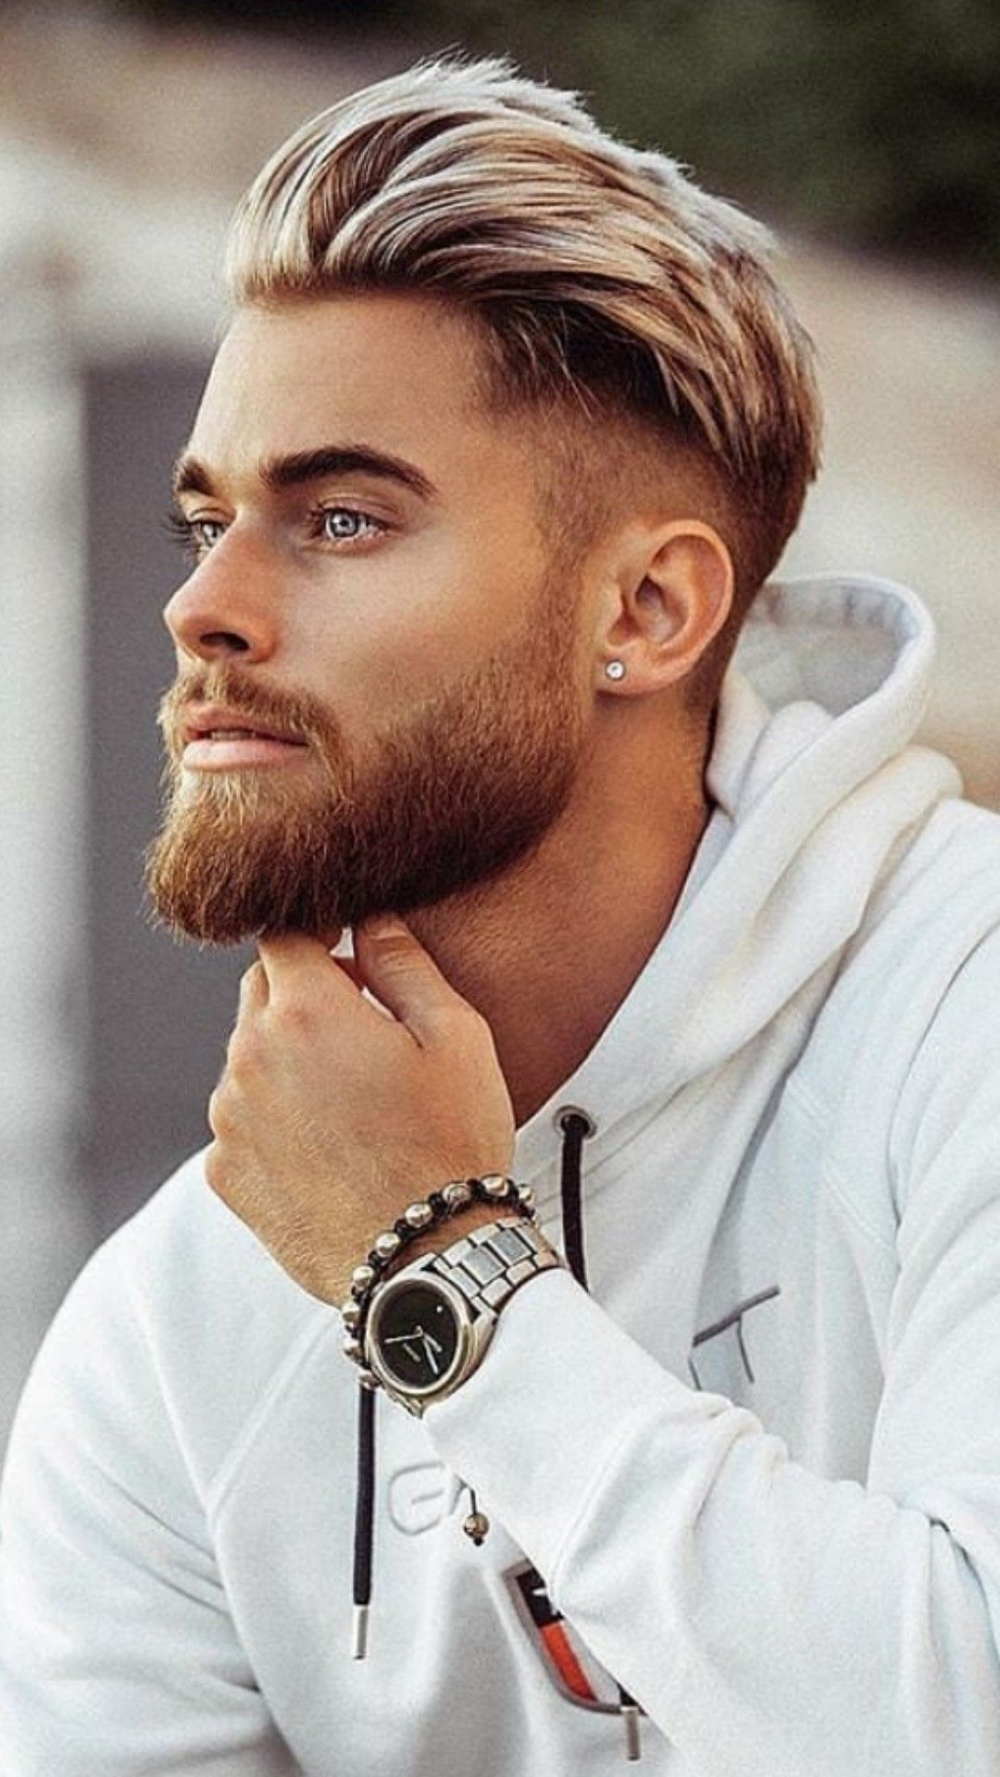 25 Ultra Dashing Medium Hairstyles For Boys Haircuts Hairstyles 2021 Mens Haircuts Short Medium Beard Styles Hipster Hairstyles